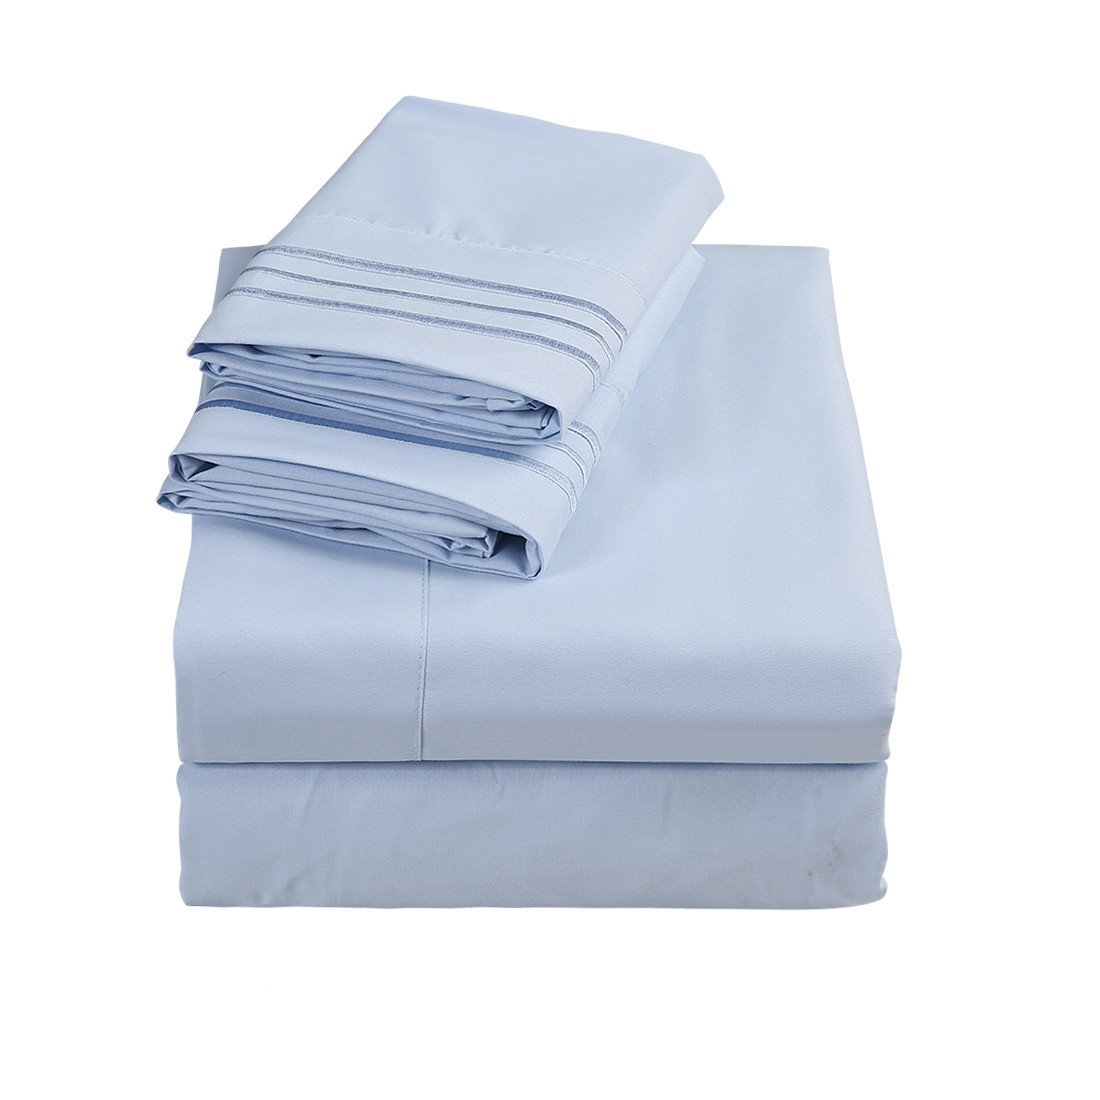 Emonia Twin Sheets Set ❤️ 4 pieces Bed Sheets-Microfiber Super Soft 1800 Series Deep Pocket Fitted Sheets-Wrinkle and Fade Resistant (Lake Blue, Twin)